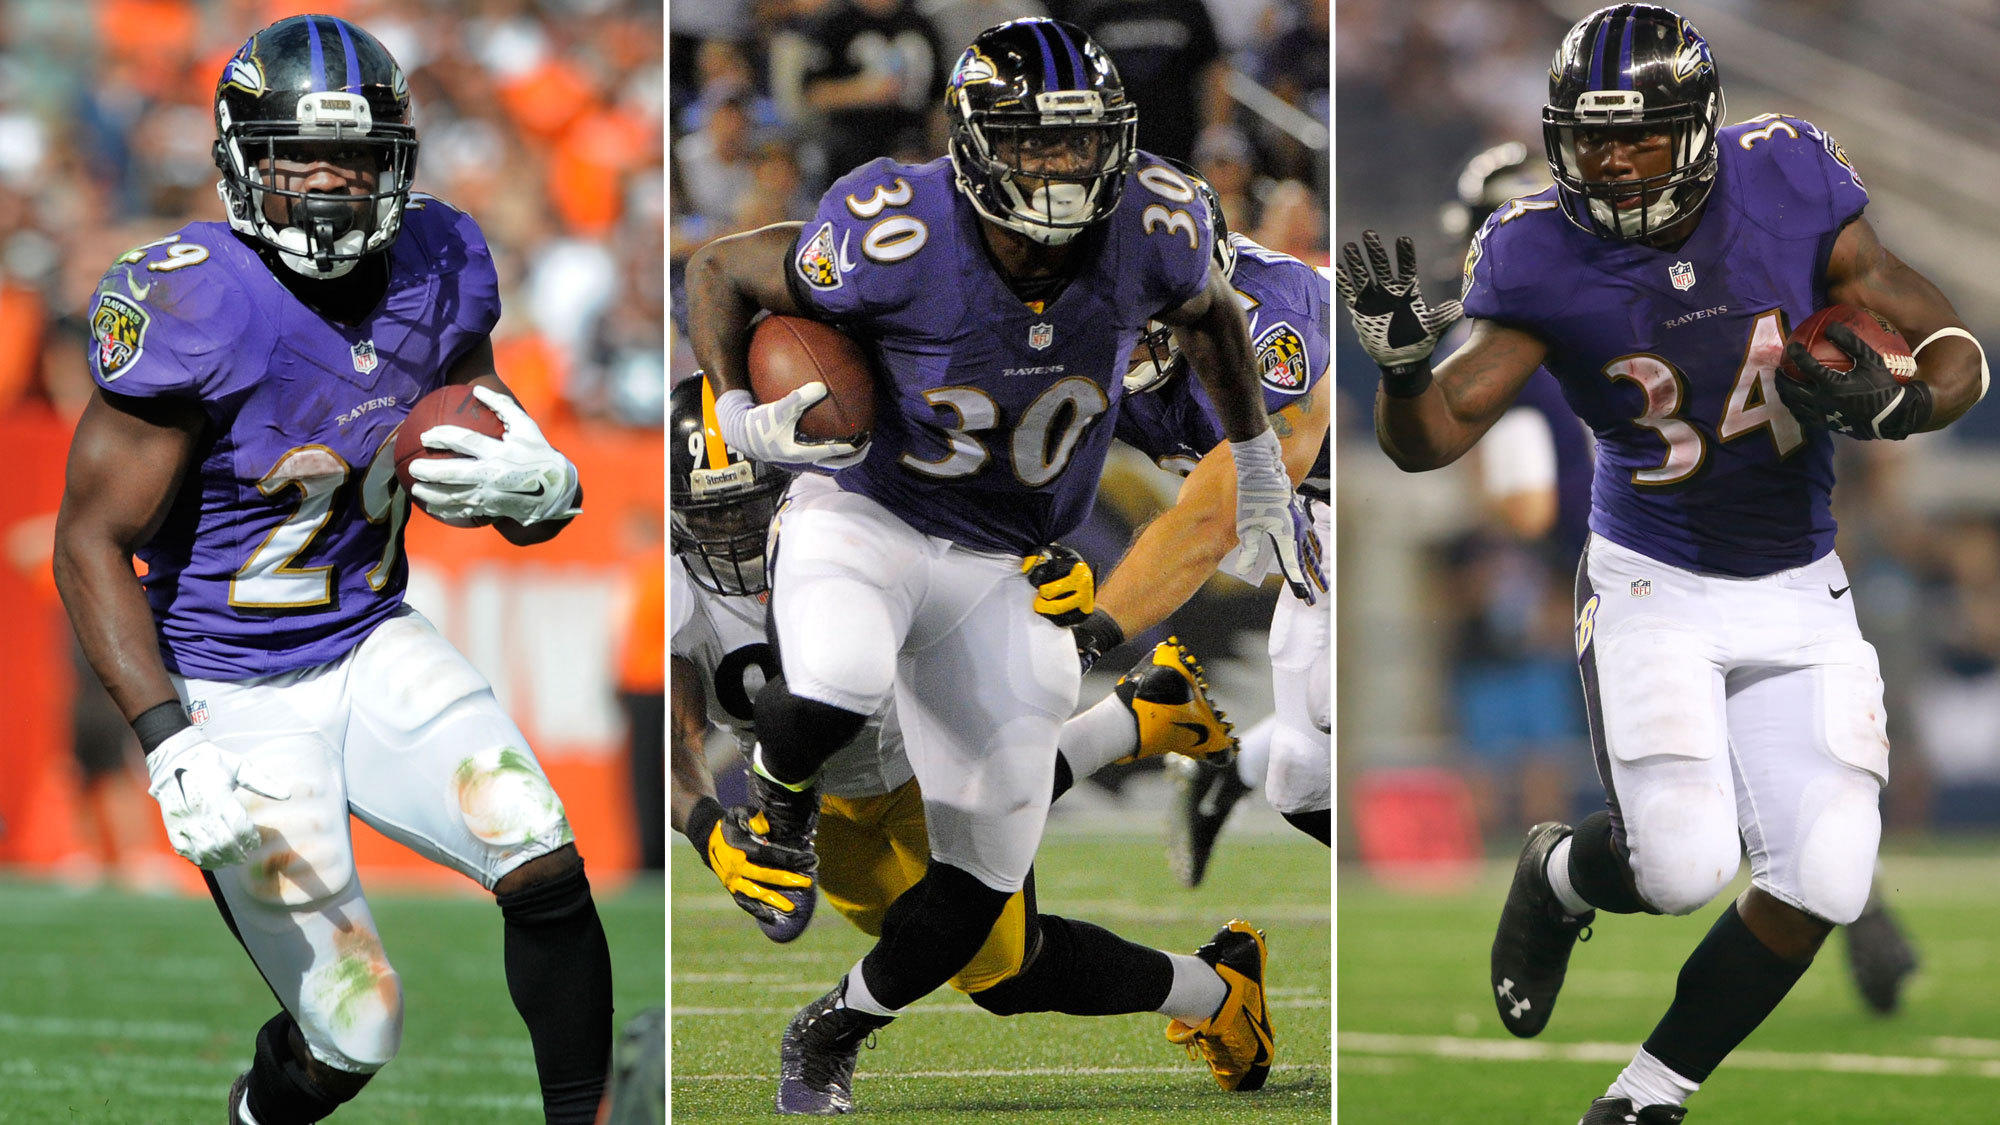 From left to right: Justin Forsett, Bernard Pierce and Lorenzo Taliaferro will split carries against the Carolina Panthers.